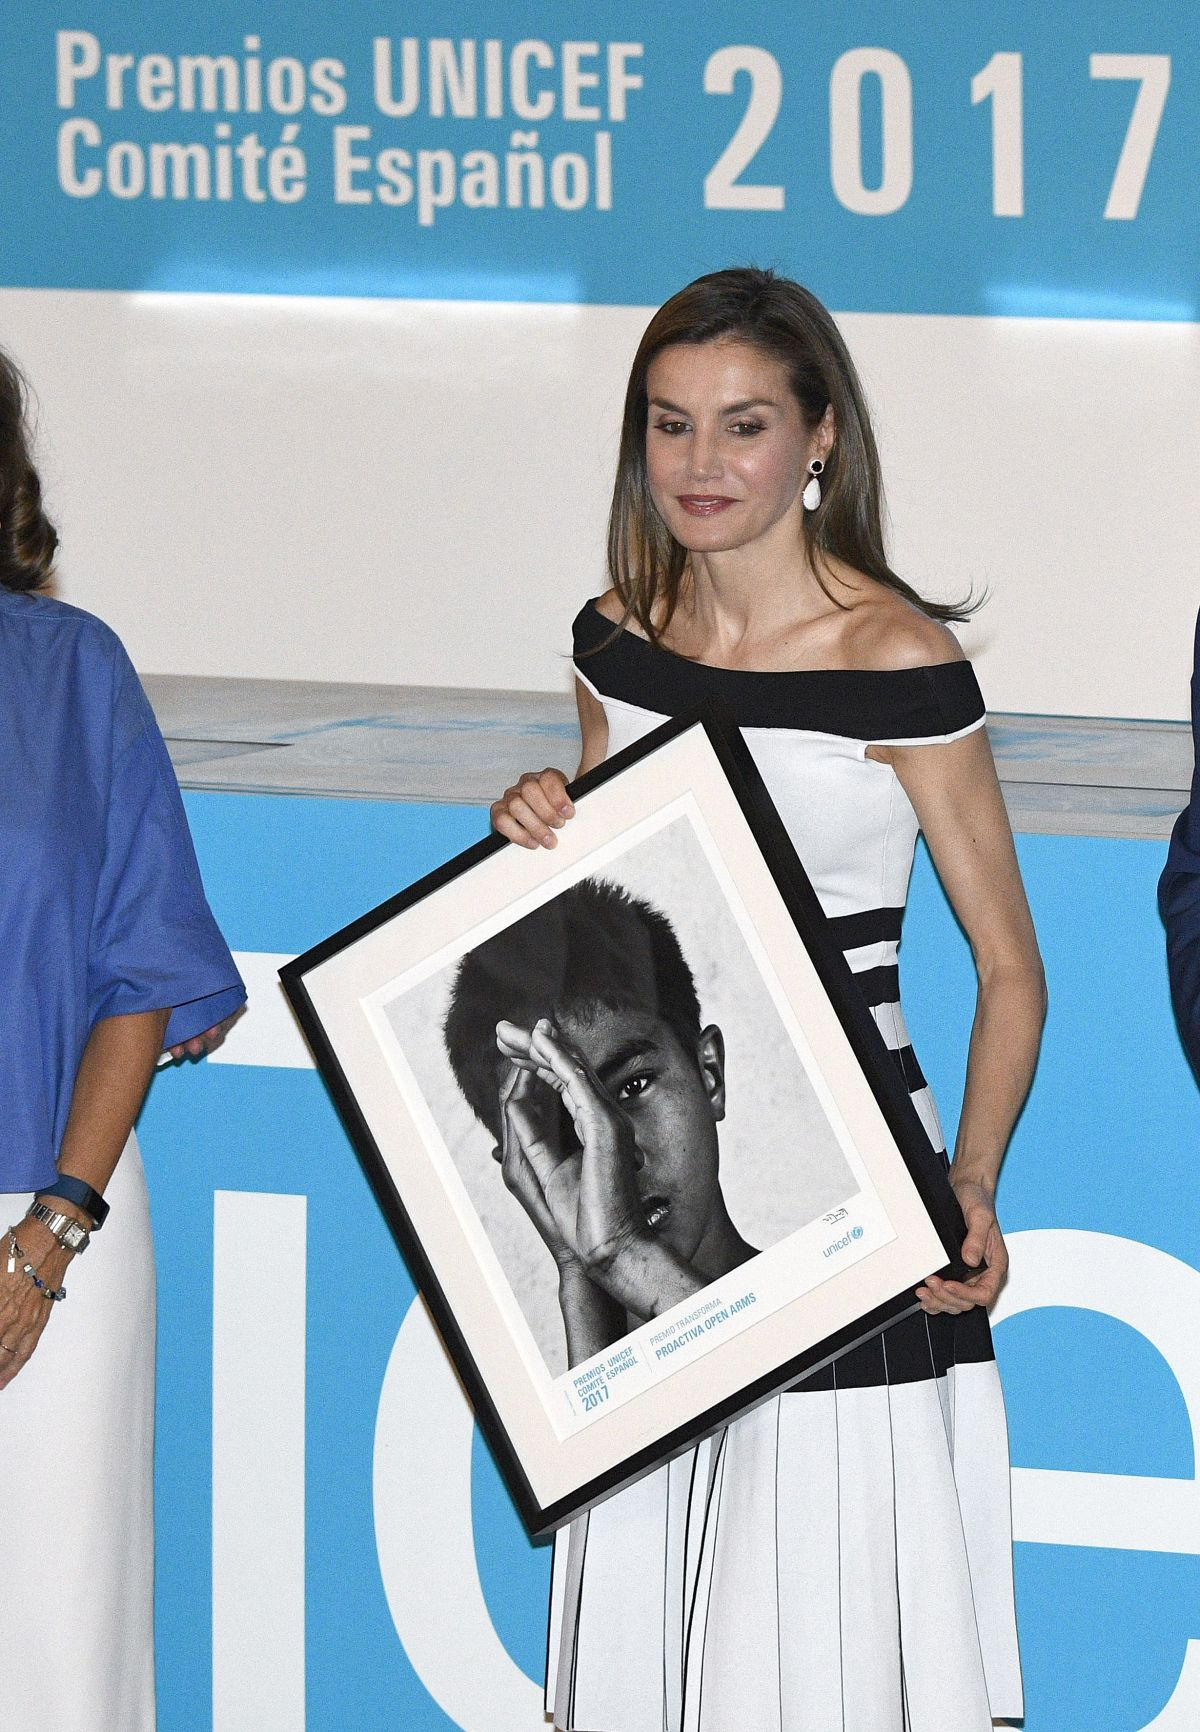 QUEEN LETIZIA OF SPAIN at Unicef Spanish Committee 2017 Awards in Madrid 06/13/2017